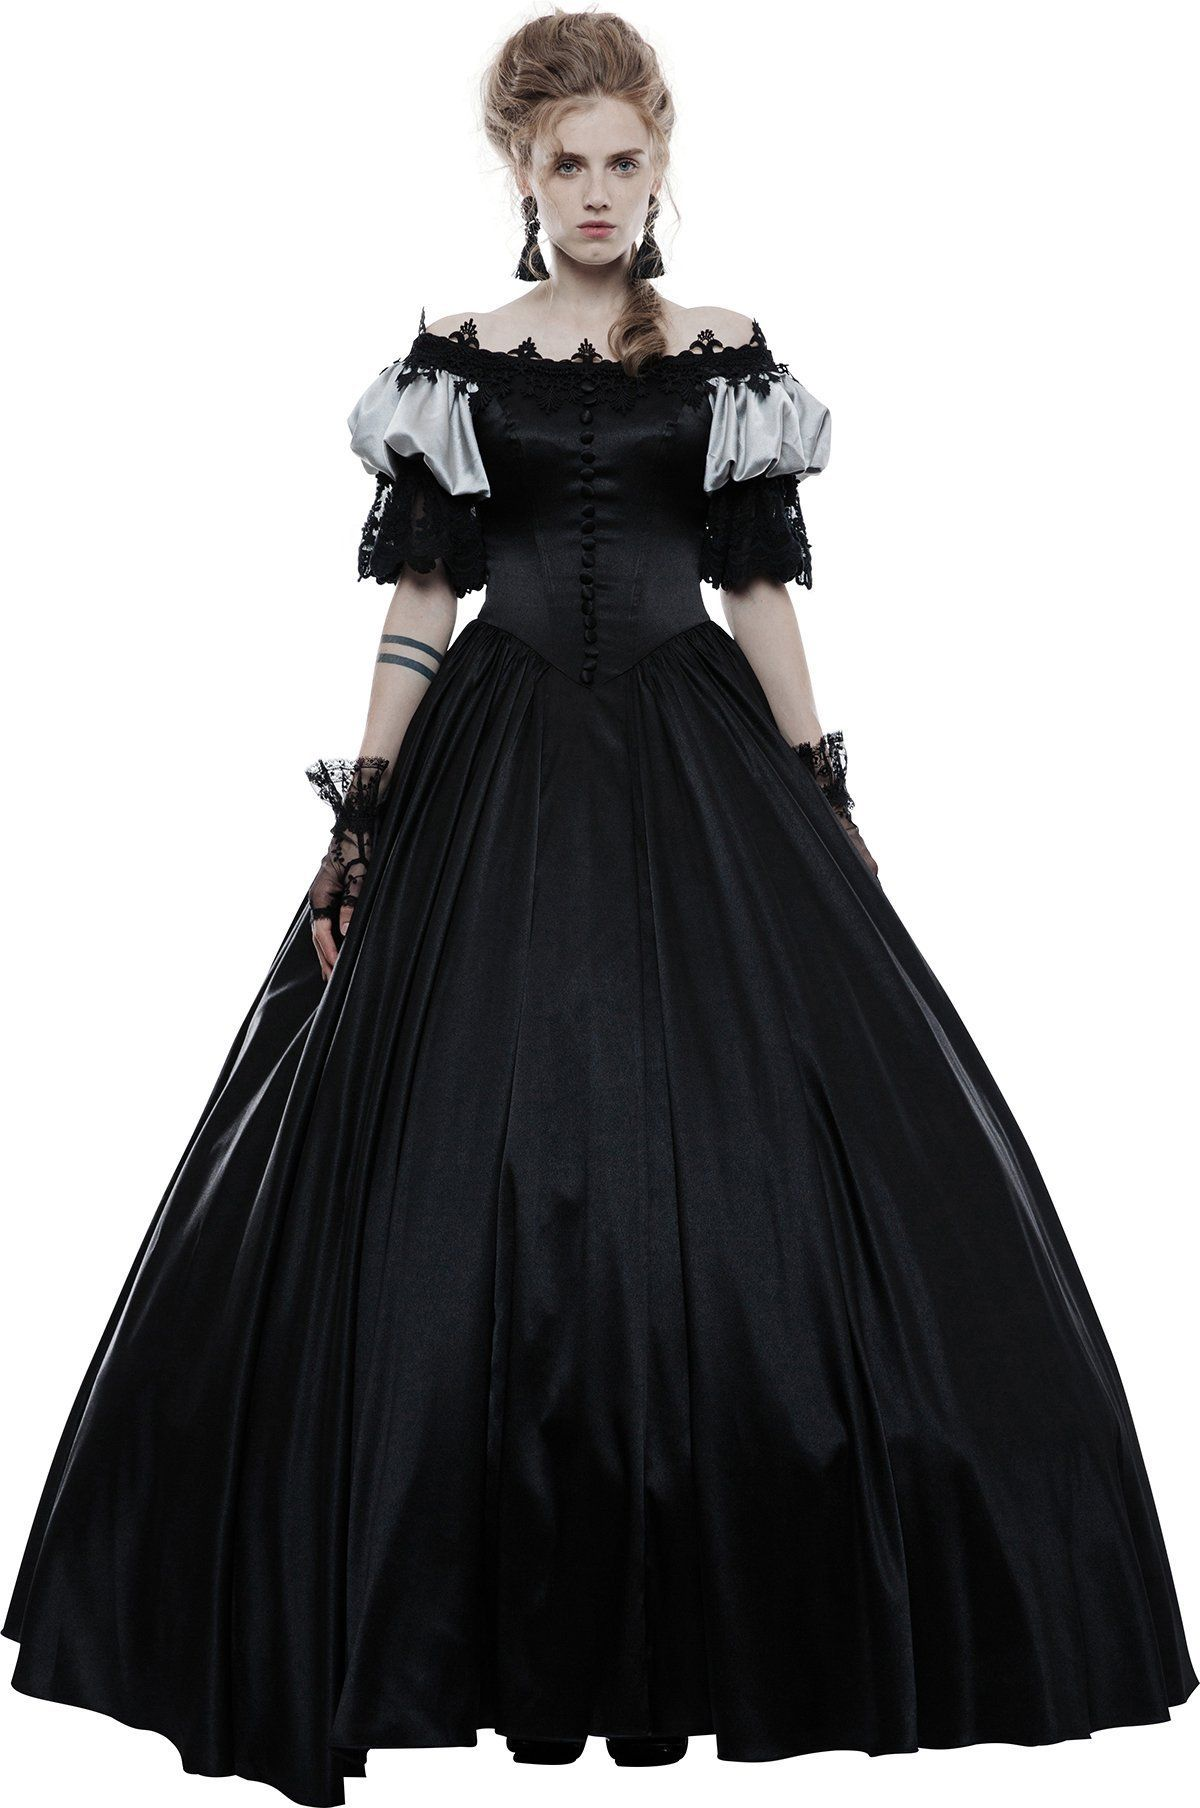 Pin On Gothic Prom Dresses [ 1808 x 1200 Pixel ]